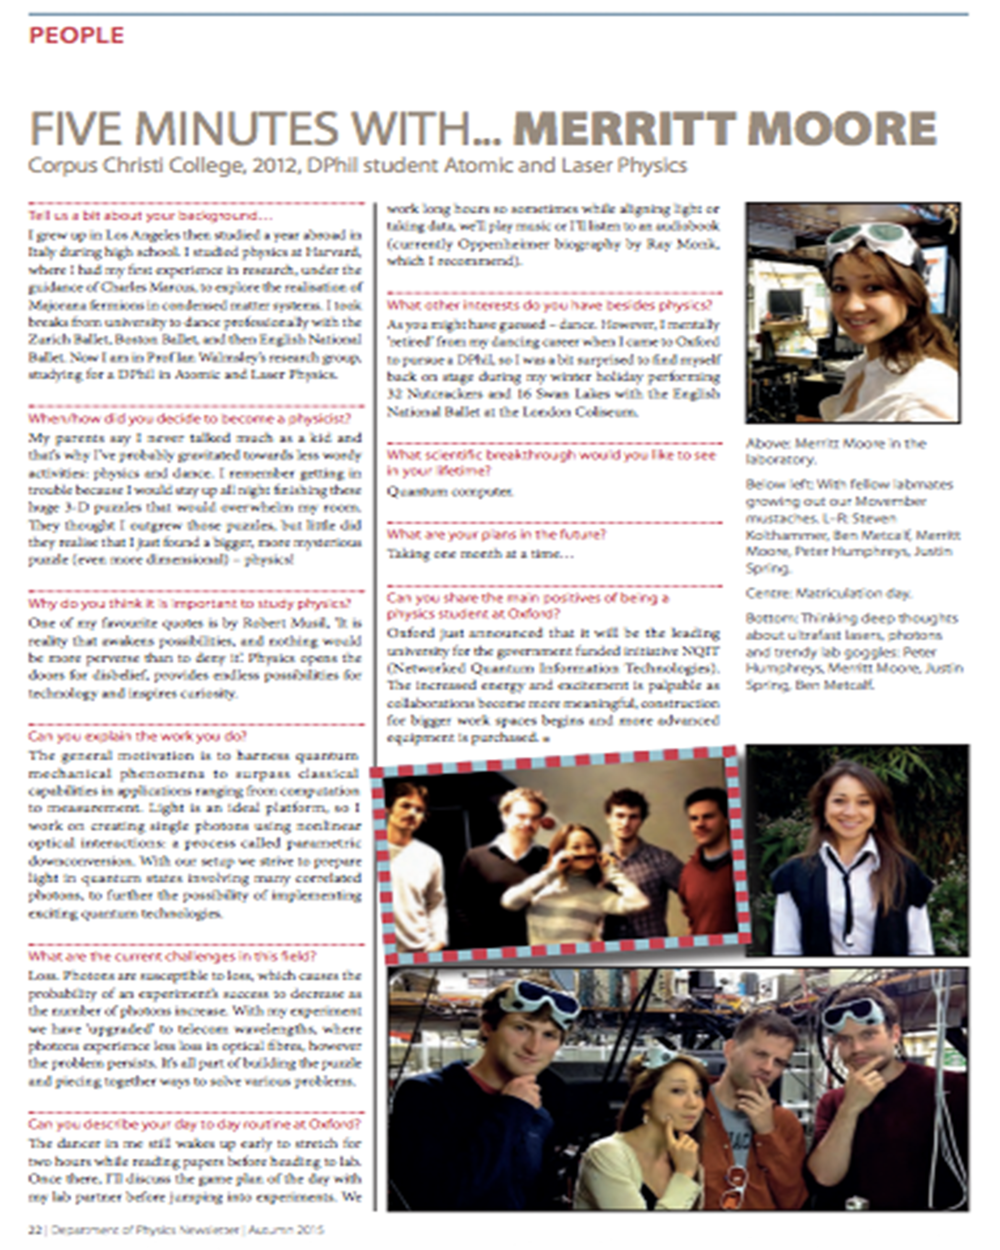 'Five Minutes With...Merritt Moore' Oxford Physics annual newsletter 2015